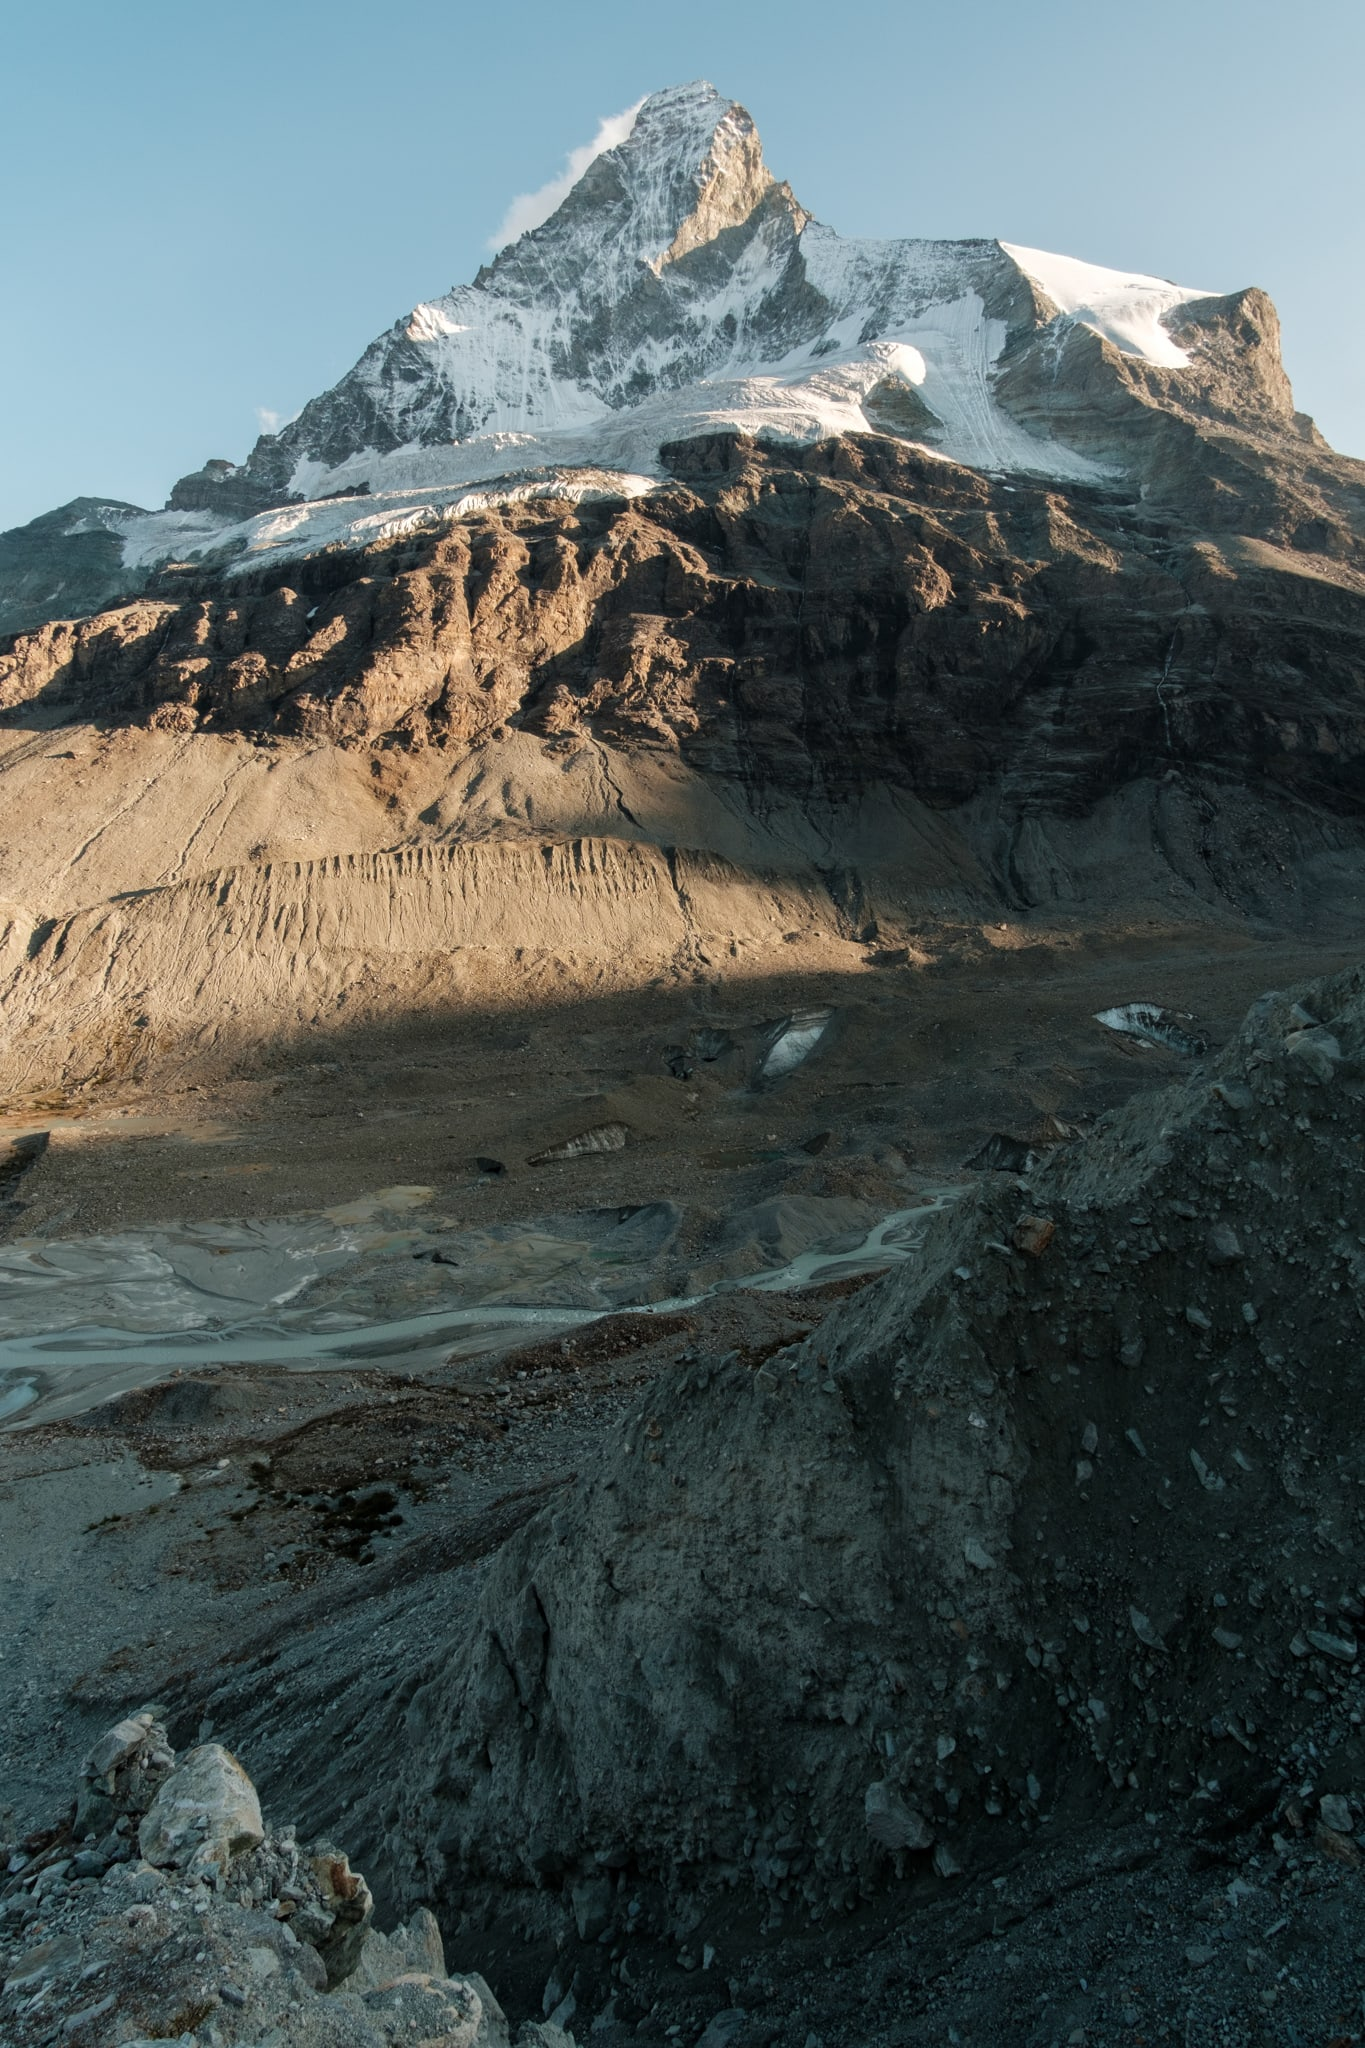 Erosion gnawing at the Matterhorn's roots © Alex Roddie